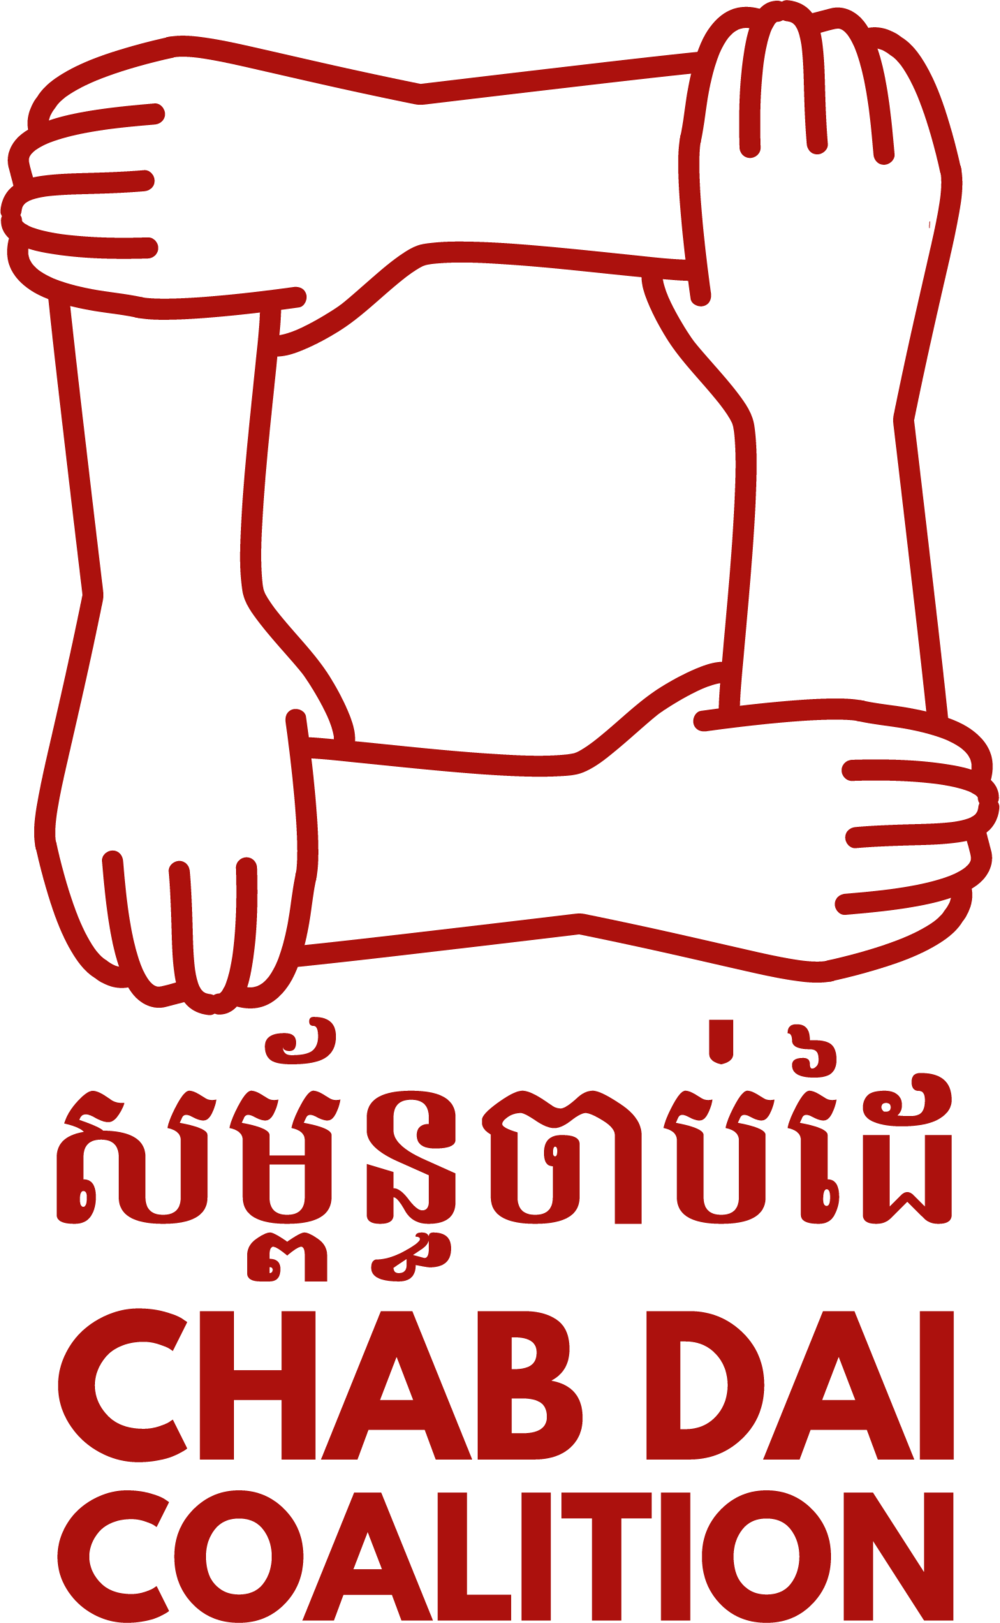 CHABDAI_COALITION_LOGO_COLORED.png